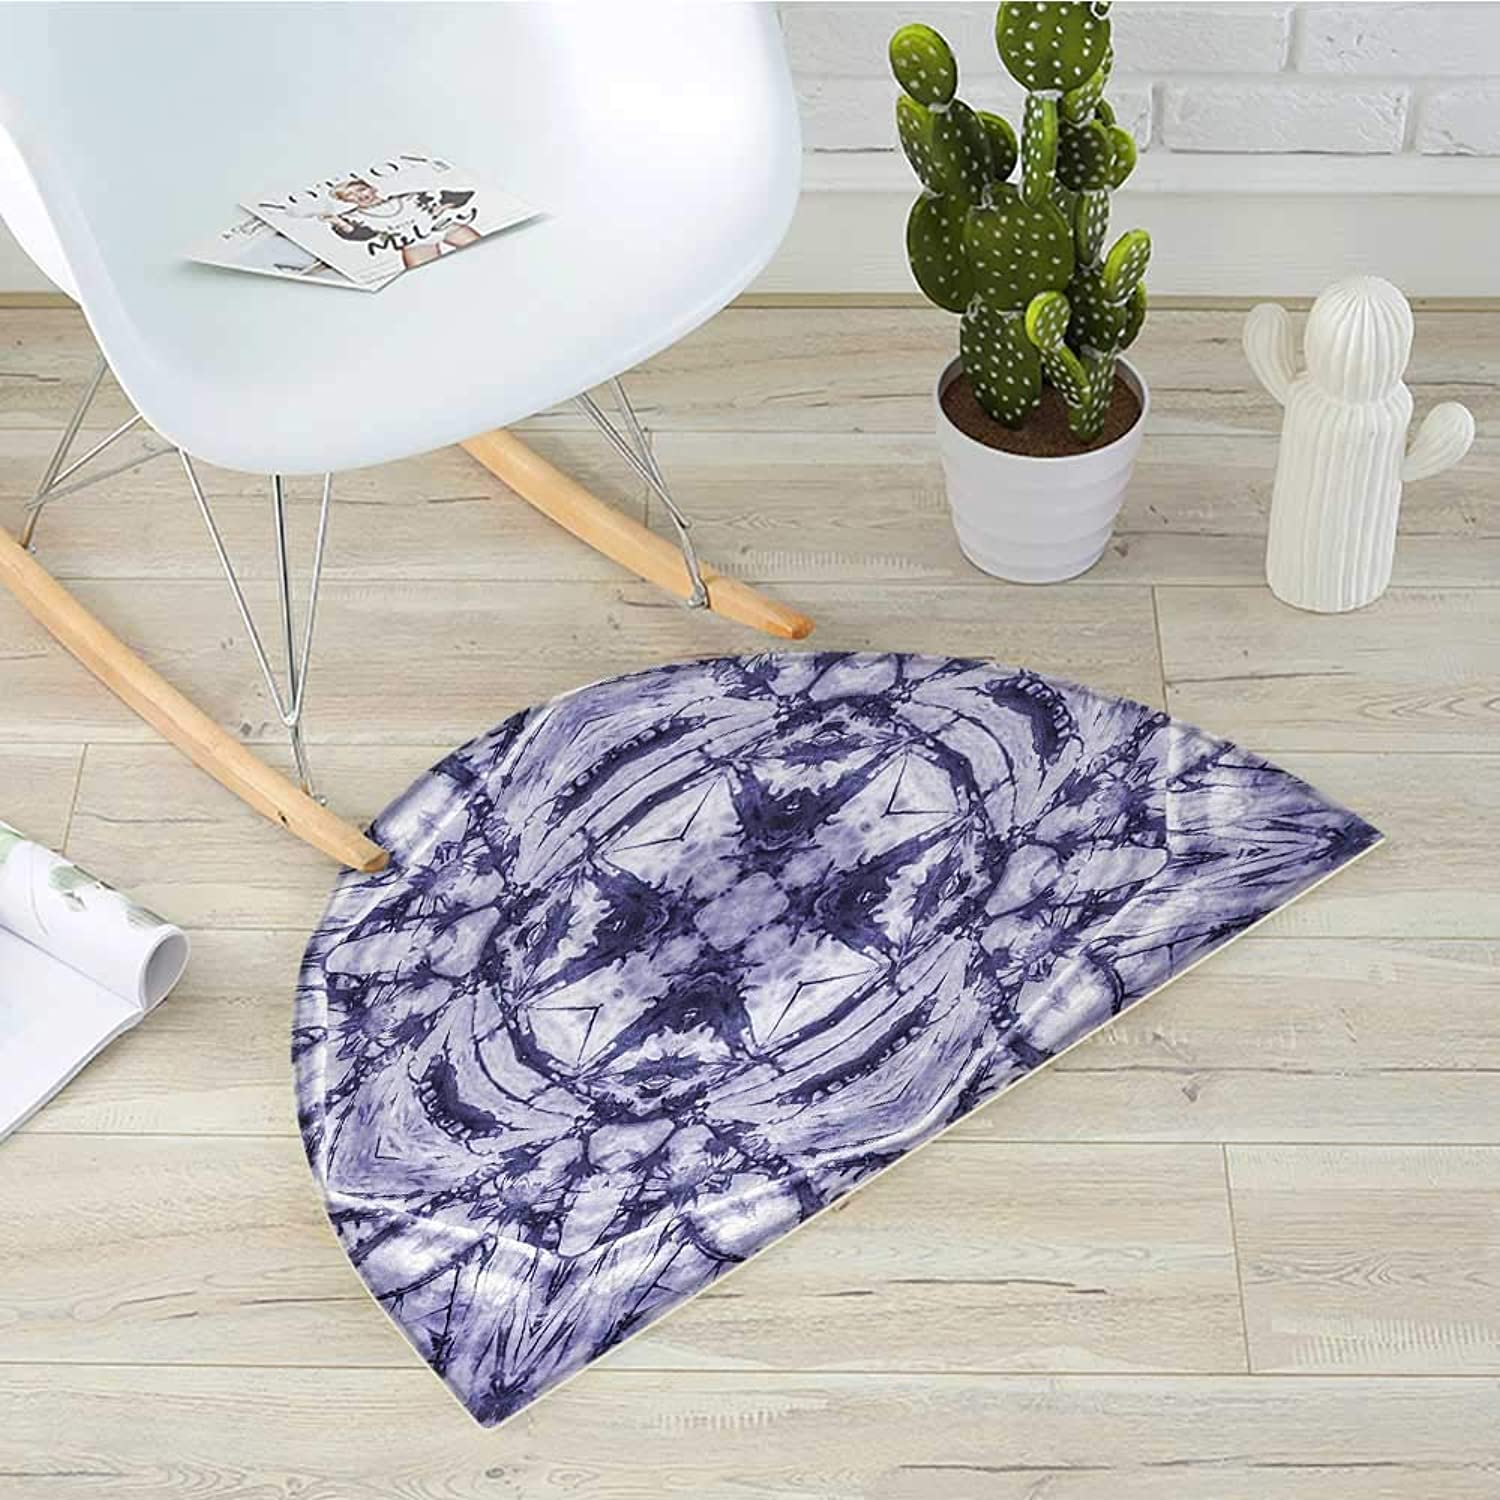 Abstract Semicircular CushionModern Form Generated by Resisting Twisting Fractal Saturated Effects Entry Door Mat H 27.5  xD 41.3  Lavender bluee Indigo